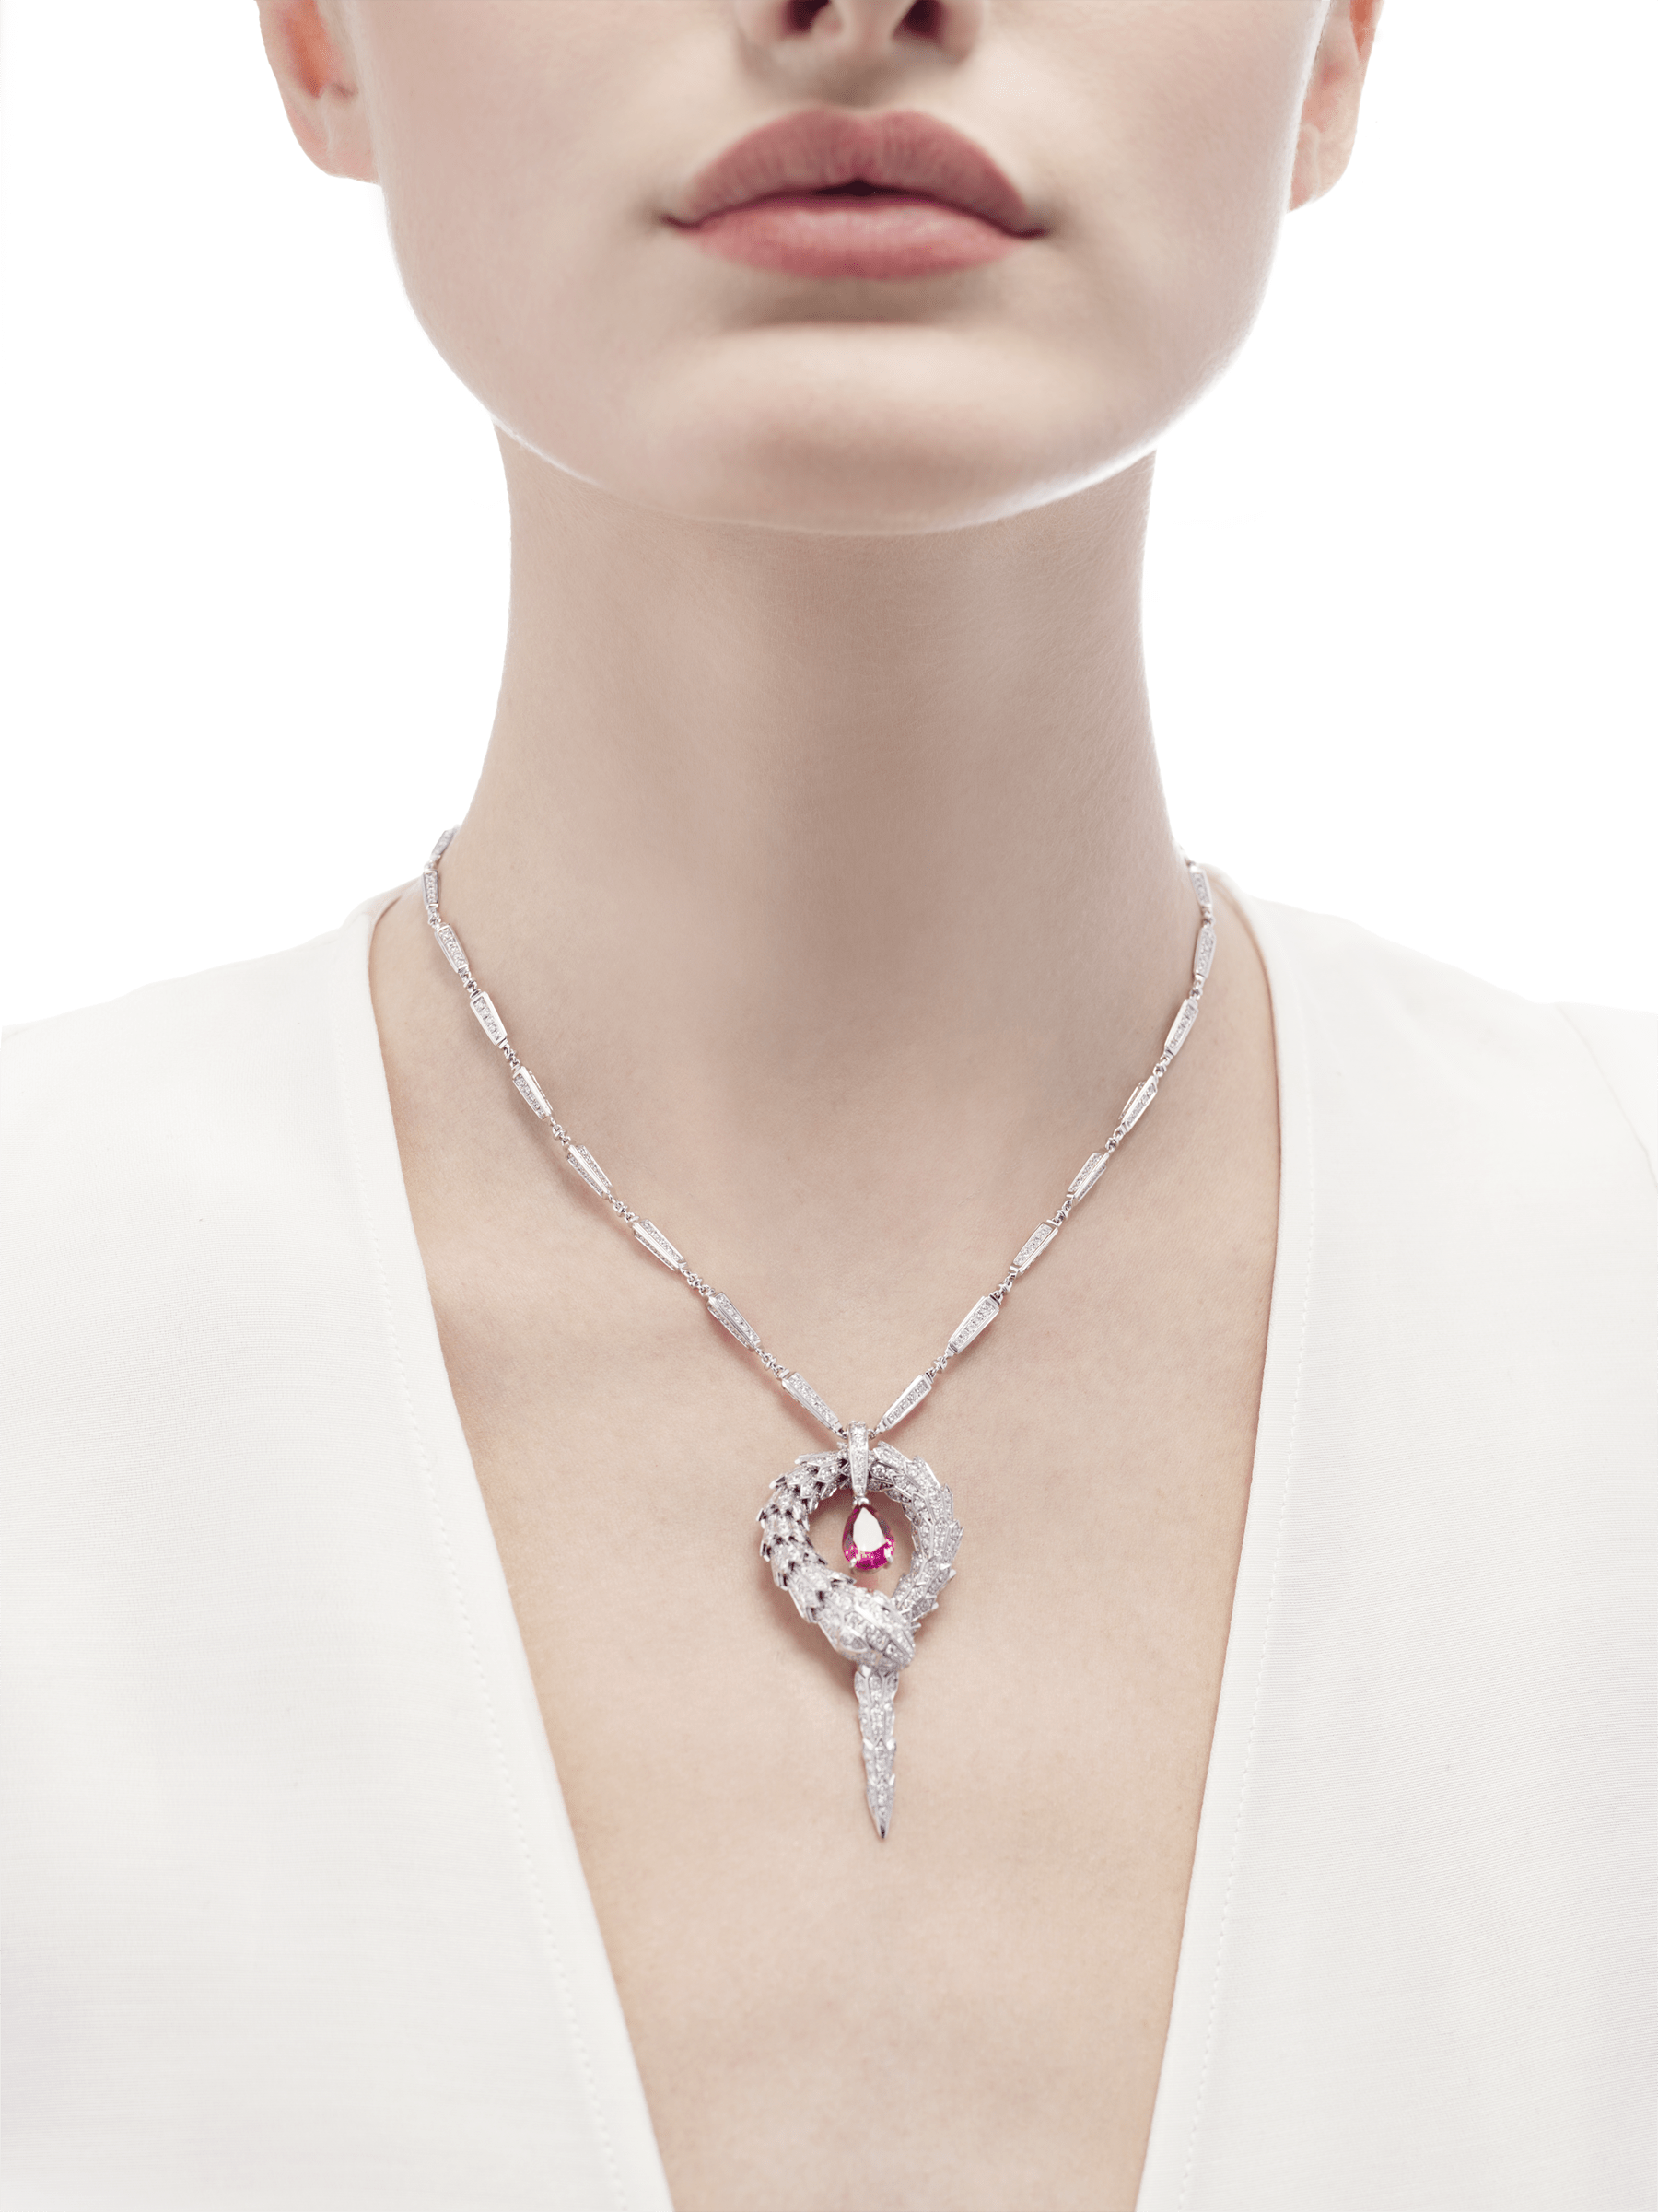 Serpenti small pendant in 18 kt white gold with rubellite (1.90 ct) and pavé diamonds (7.13 ct) 354086 image 2